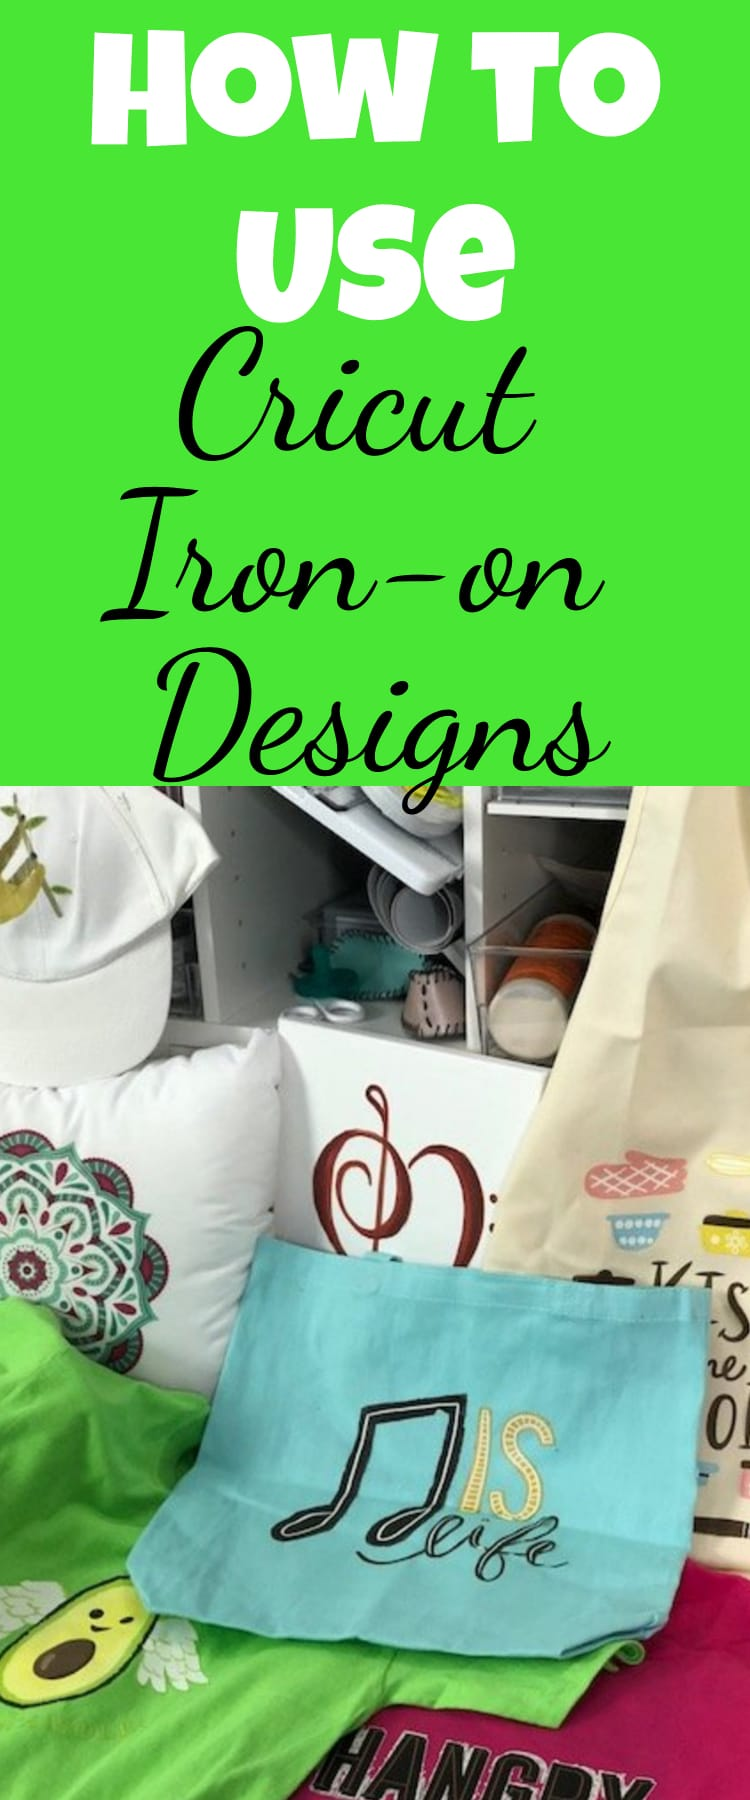 Cricut Iron-on Designs